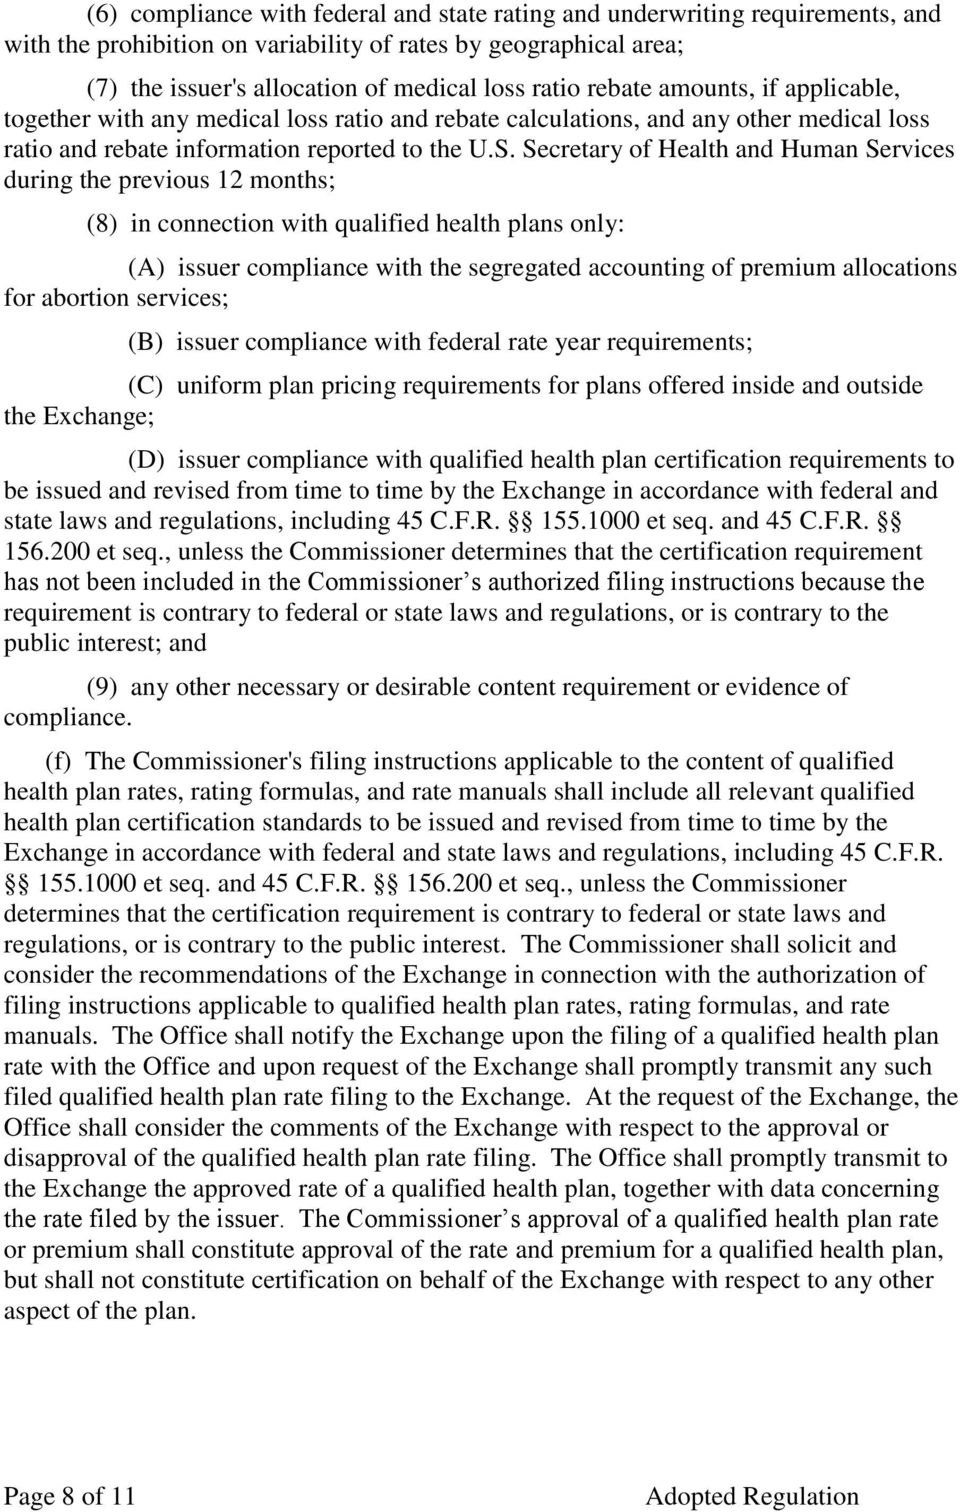 Secretary of Health and Human Services during the previous 12 months; (8) in connection with qualified health plans only: (A) issuer compliance with the segregated accounting of premium allocations